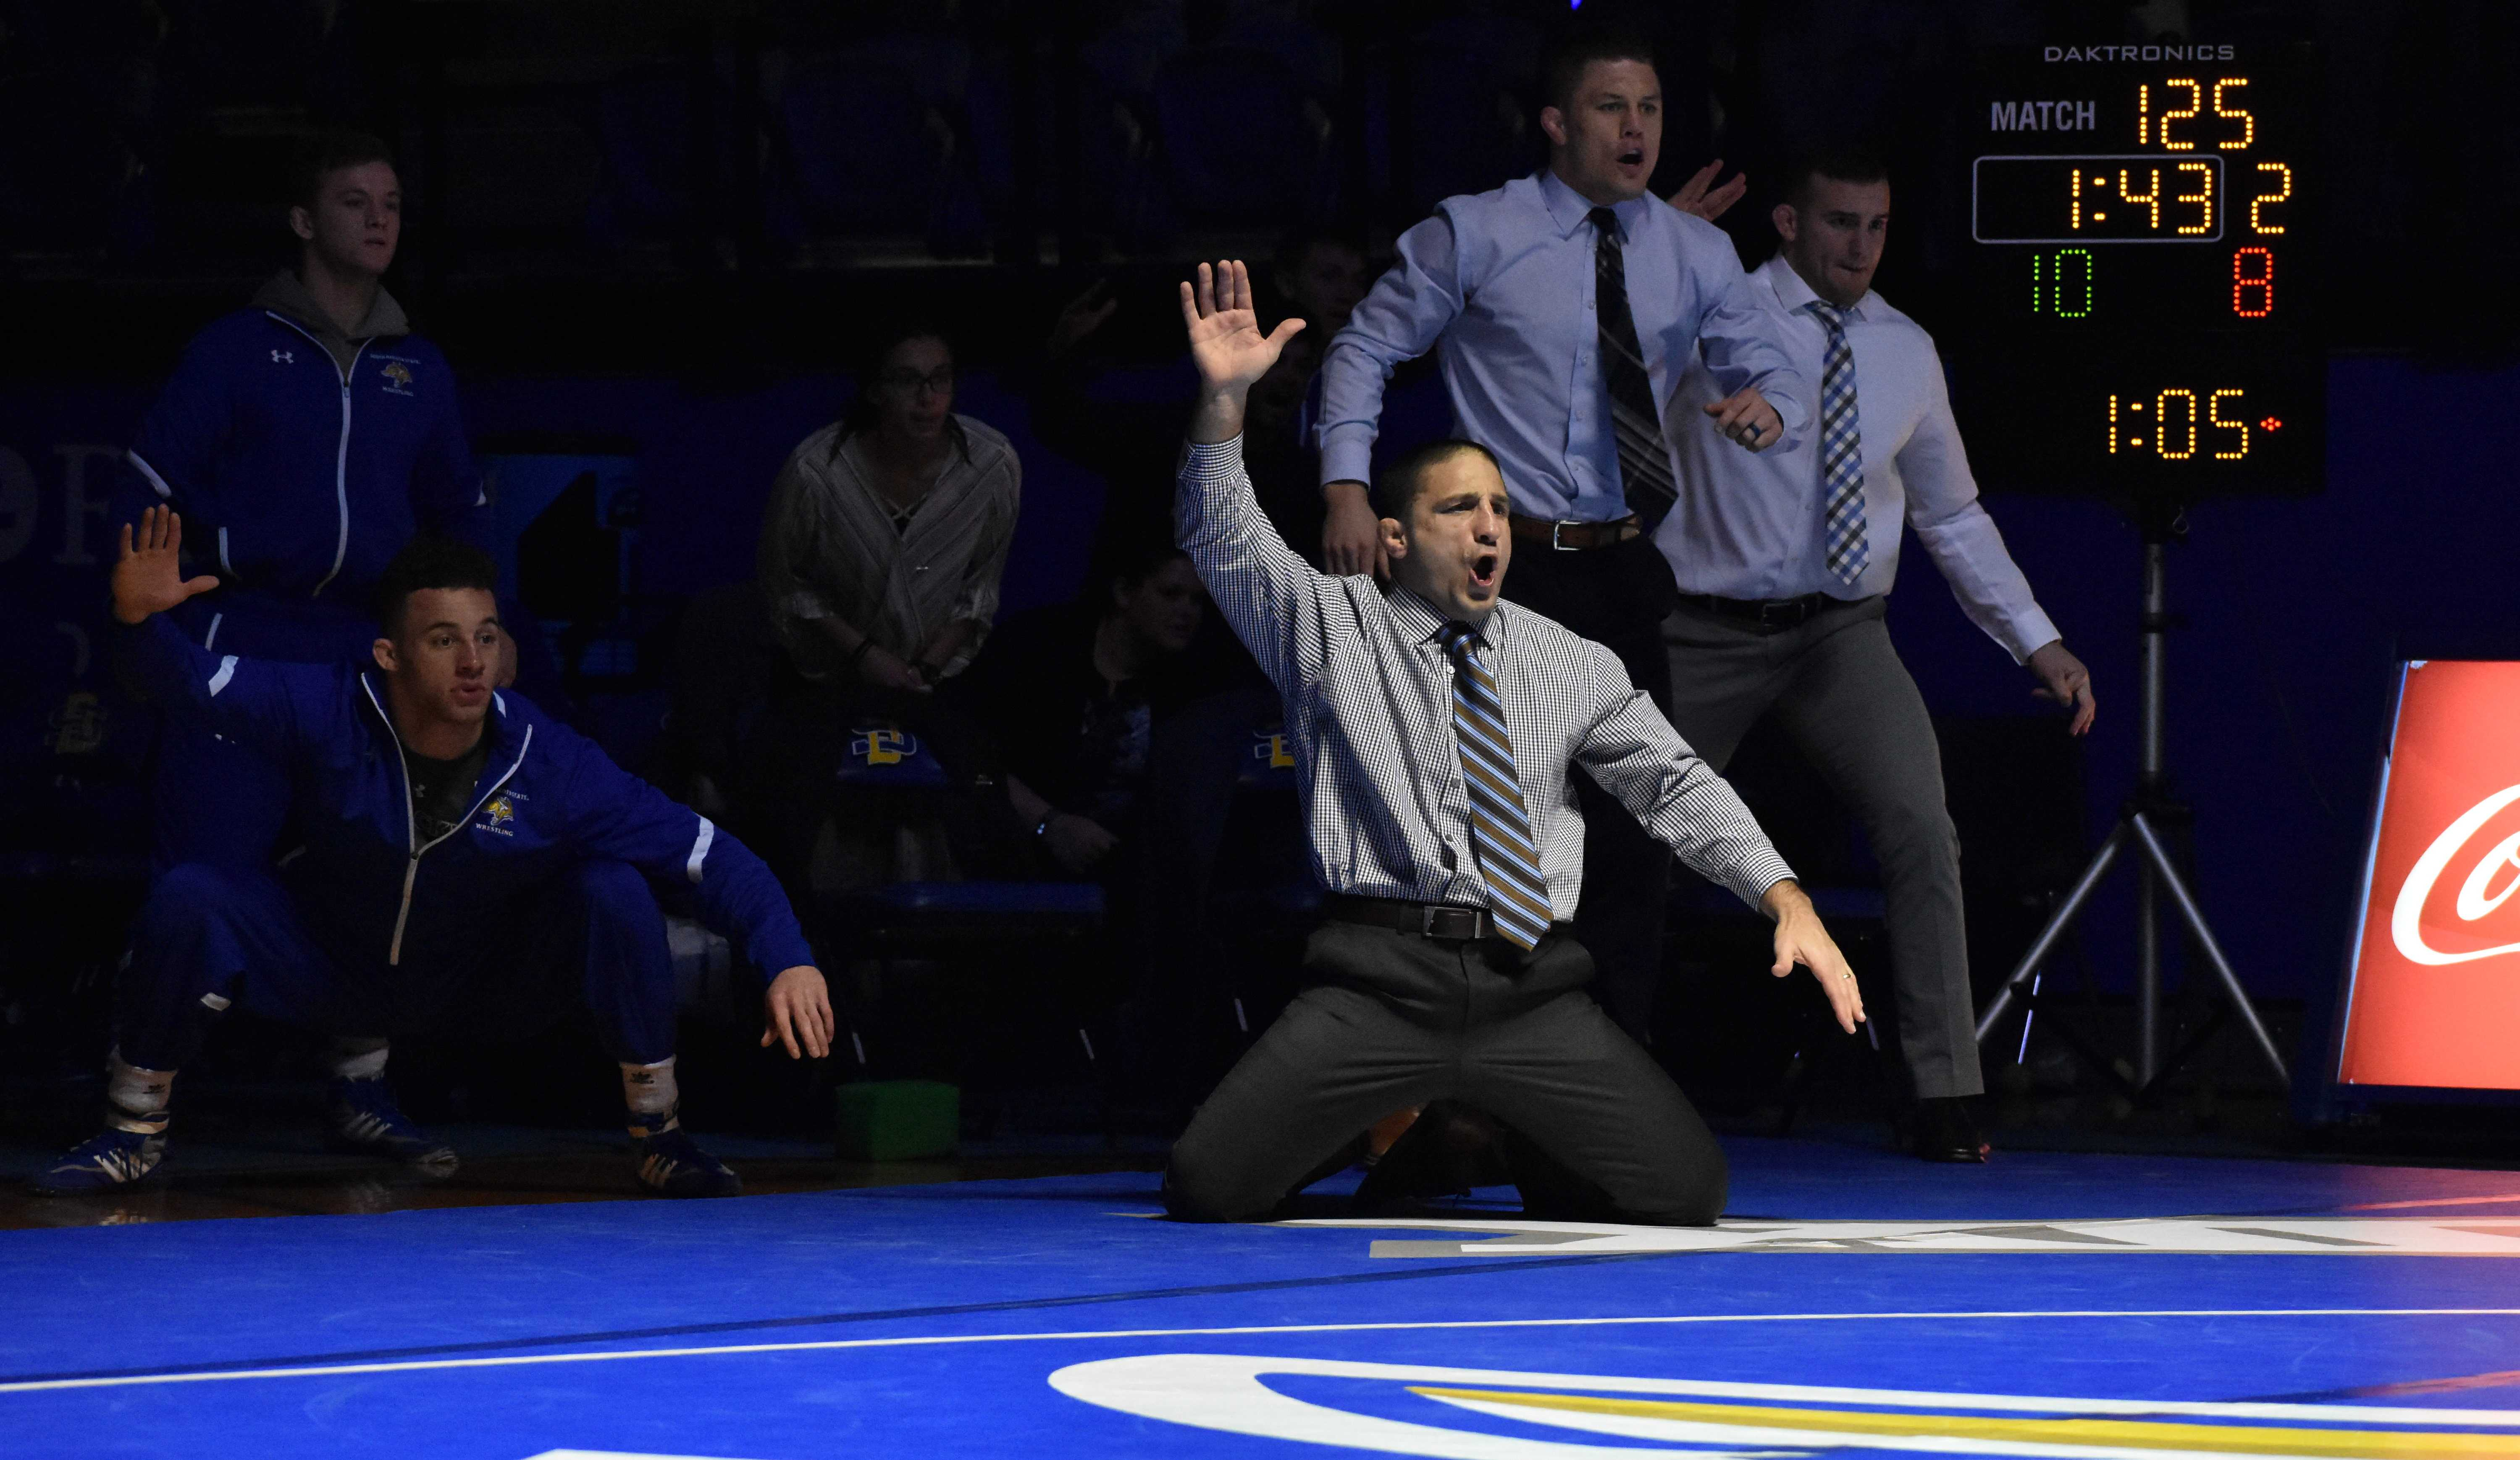 """ABBY FULLENKAMP """"He is always fired up, there is never a time where you don't get that,"""" junior Seth Gross said. Chris Bono became the head coach of the wrestling team in 2012, and SDSU has improved each season under his leadership."""